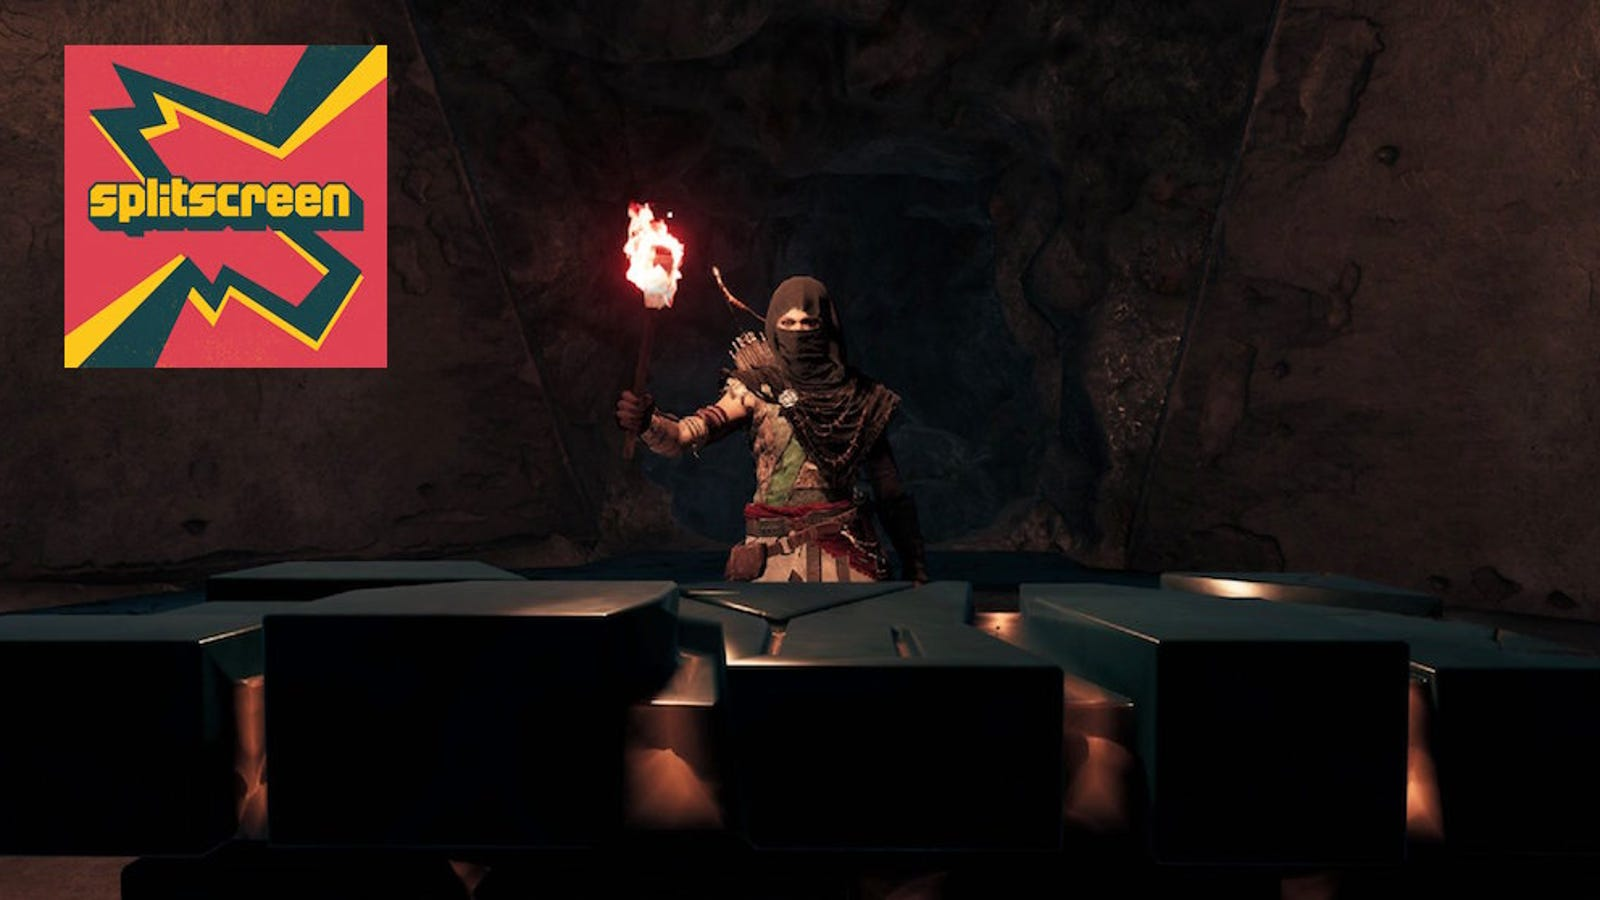 What's Your Weirdest Video Game Ritual?